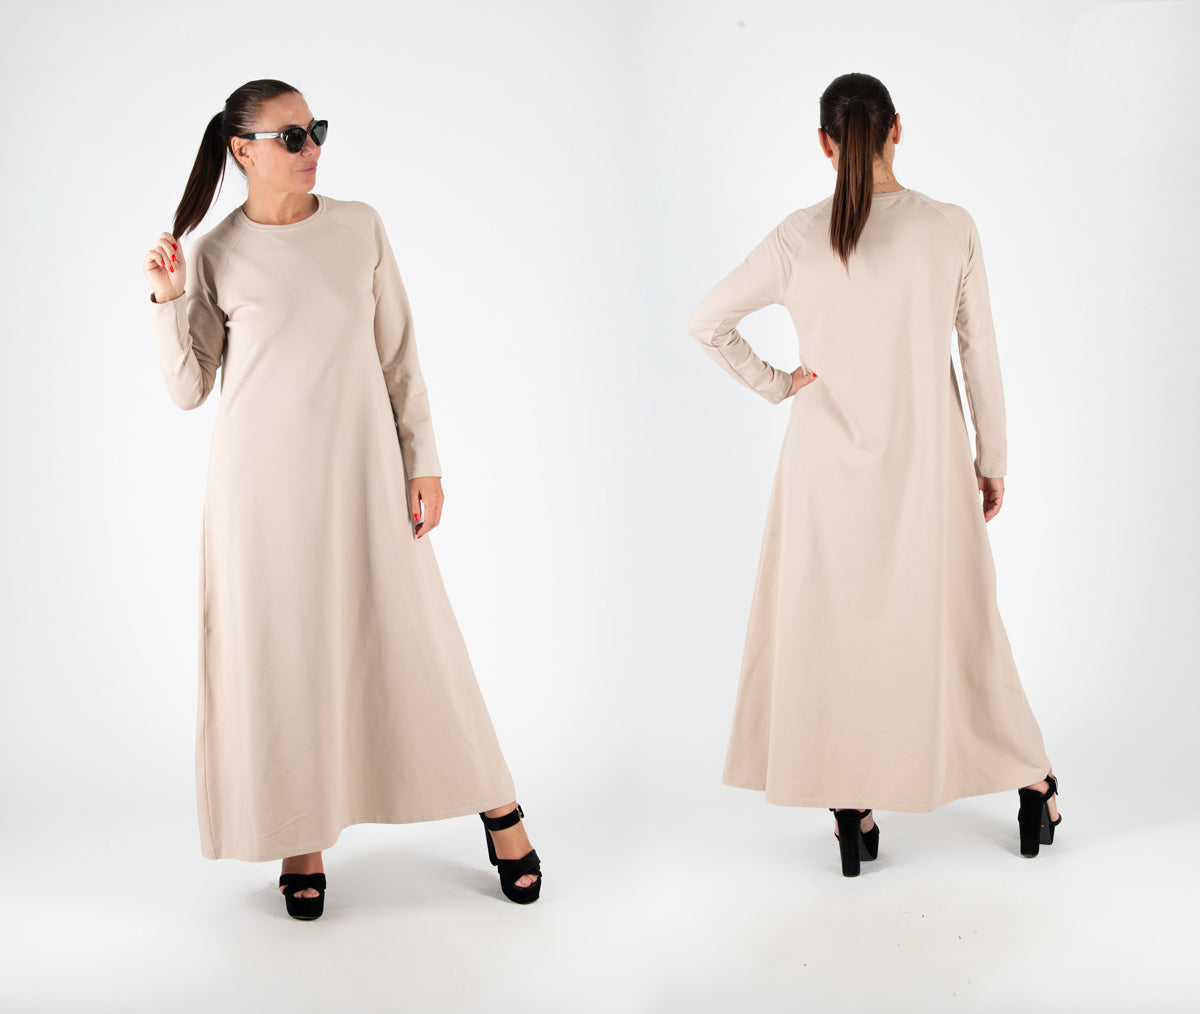 beige winter dress